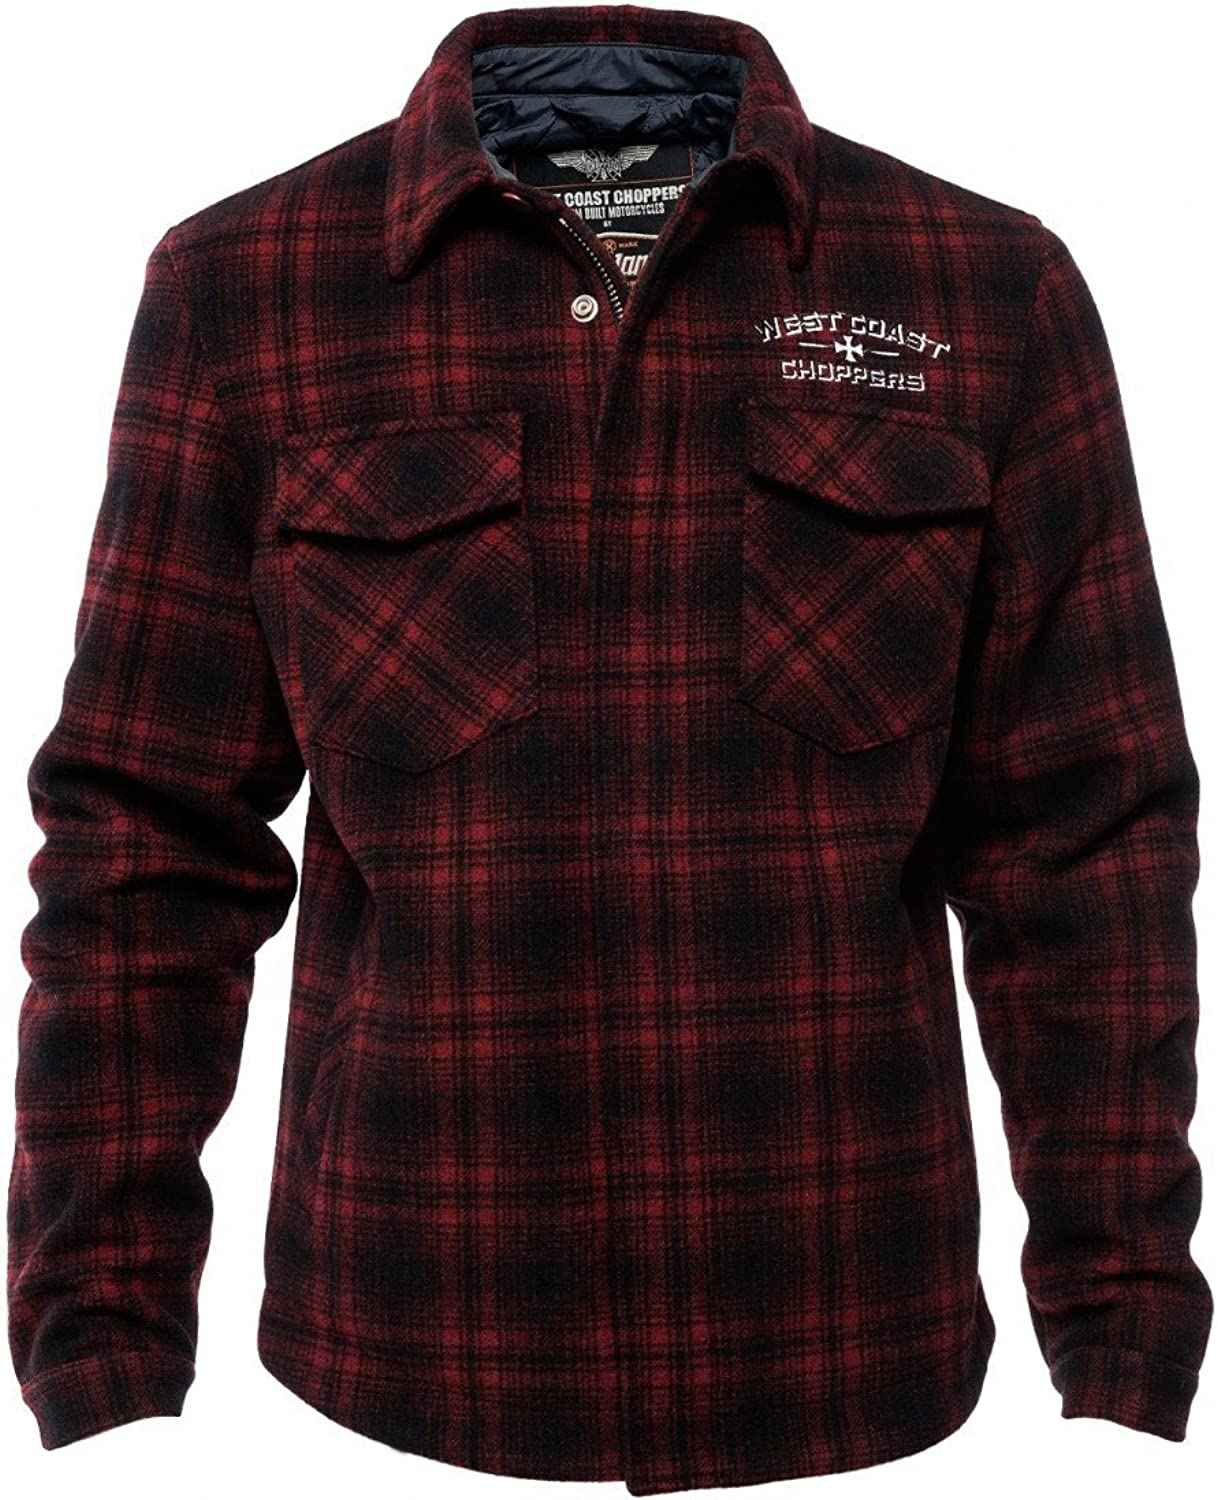 West Coast Choppers Jacke Quilted Gang Jacket B00PAB1PP8  Ästhetisches Aussehen